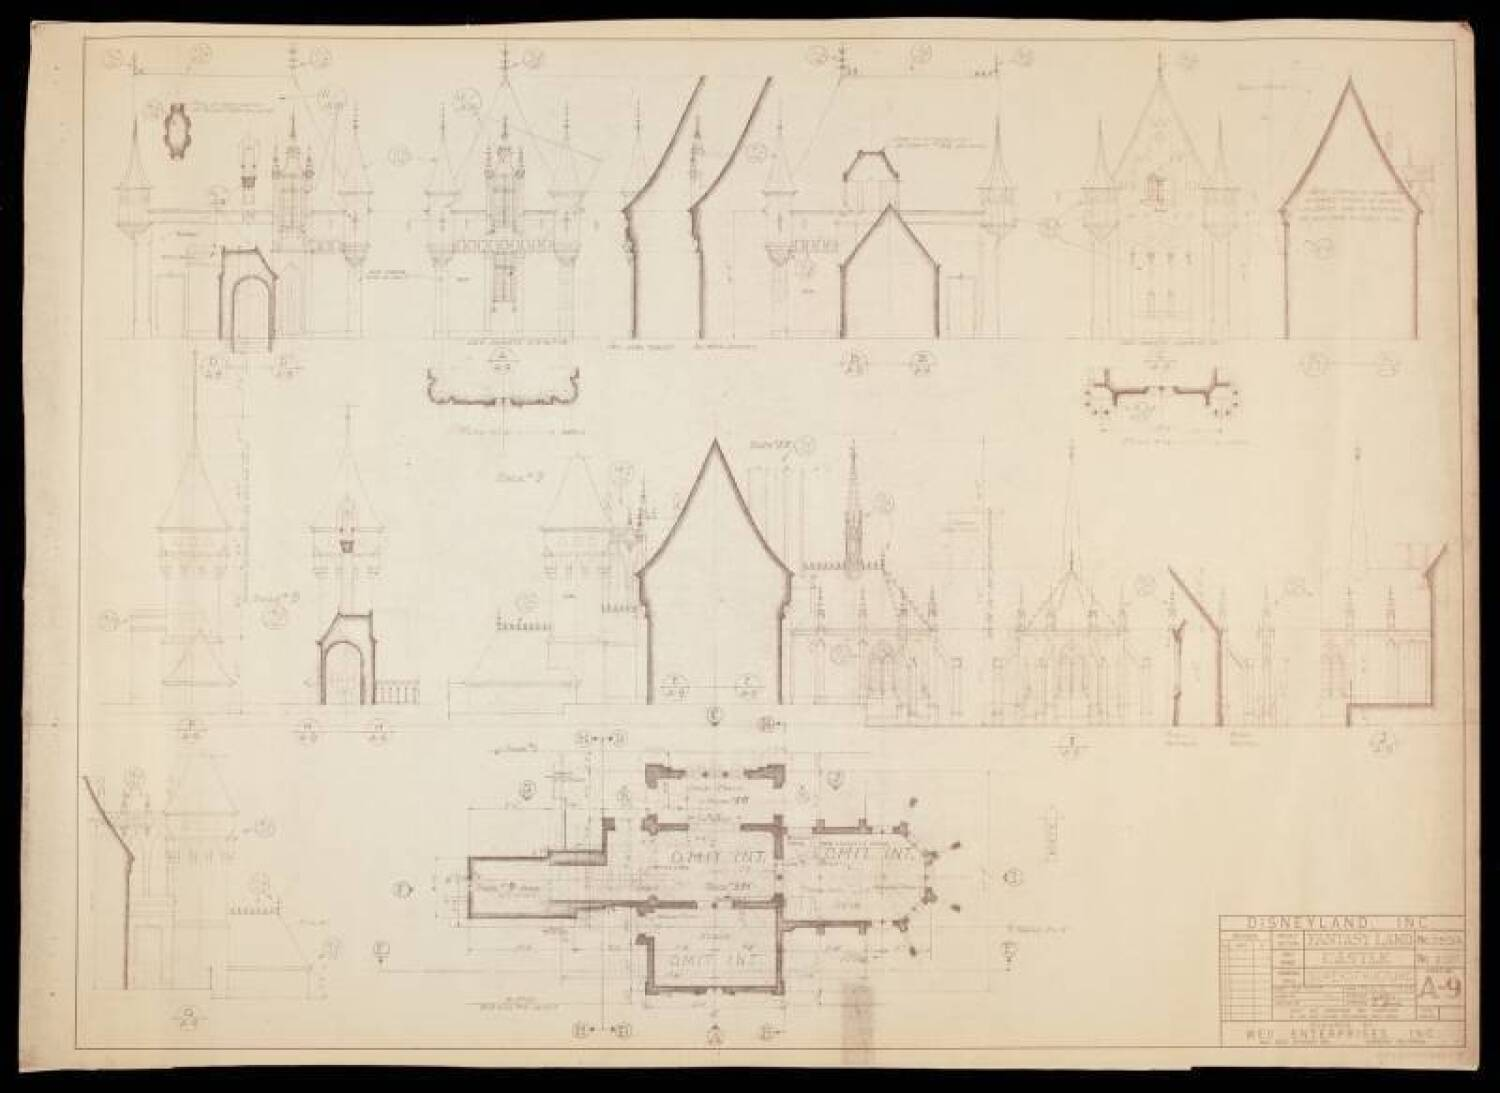 DISNEYLAND SLEEPING BEAUTY CASTLE BLUEPRINT ...